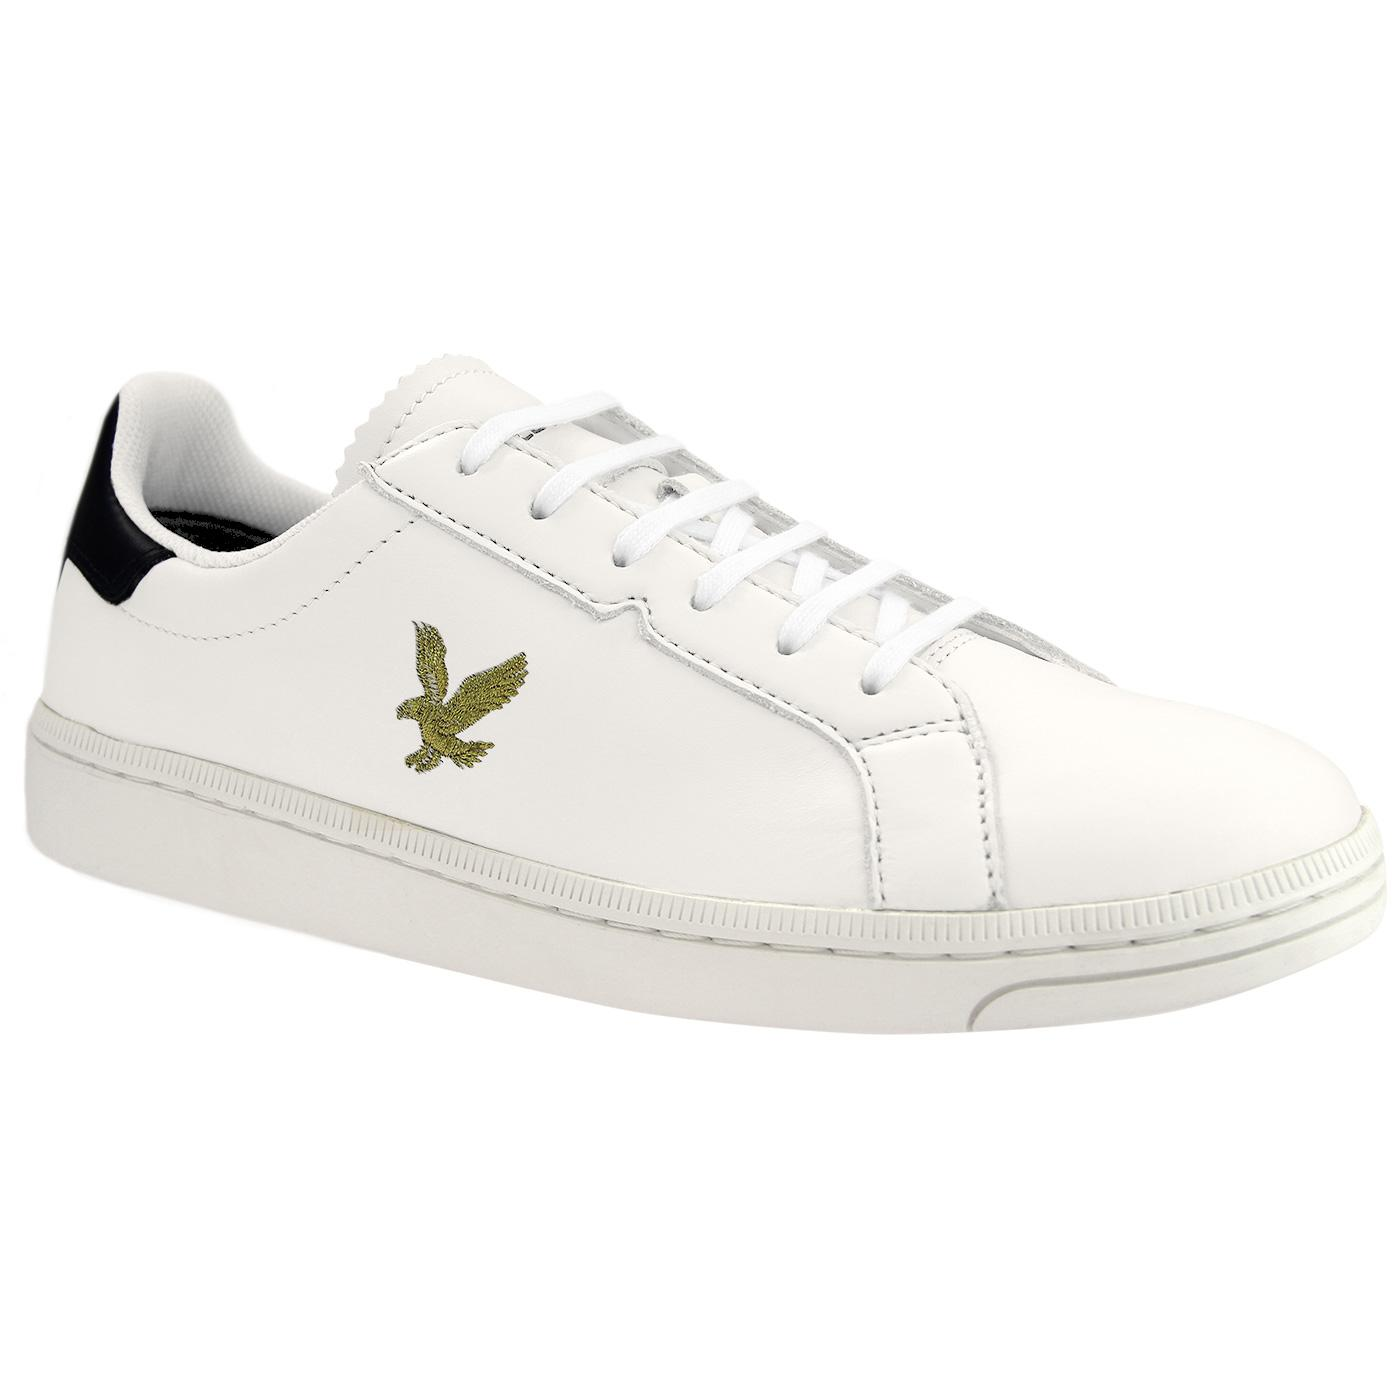 Cormack LYLE & SCOTT Retro Mod Casuals Trainers WN